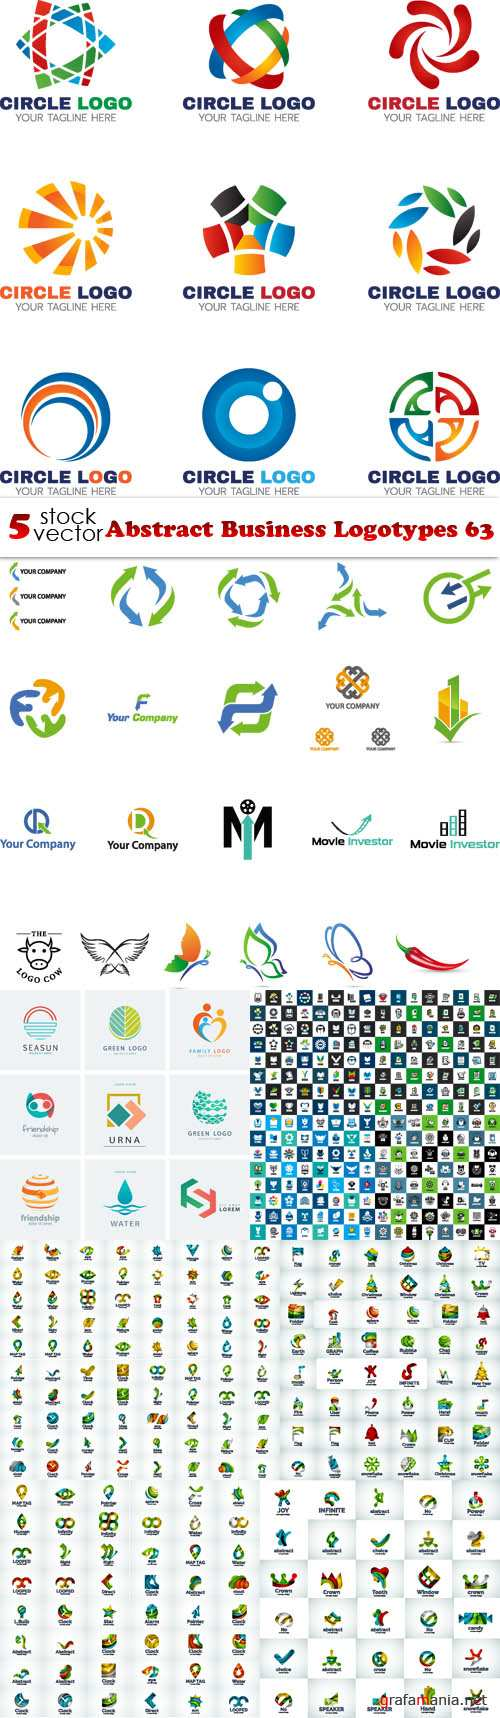 Vectors - Abstract Business Logotypes 63